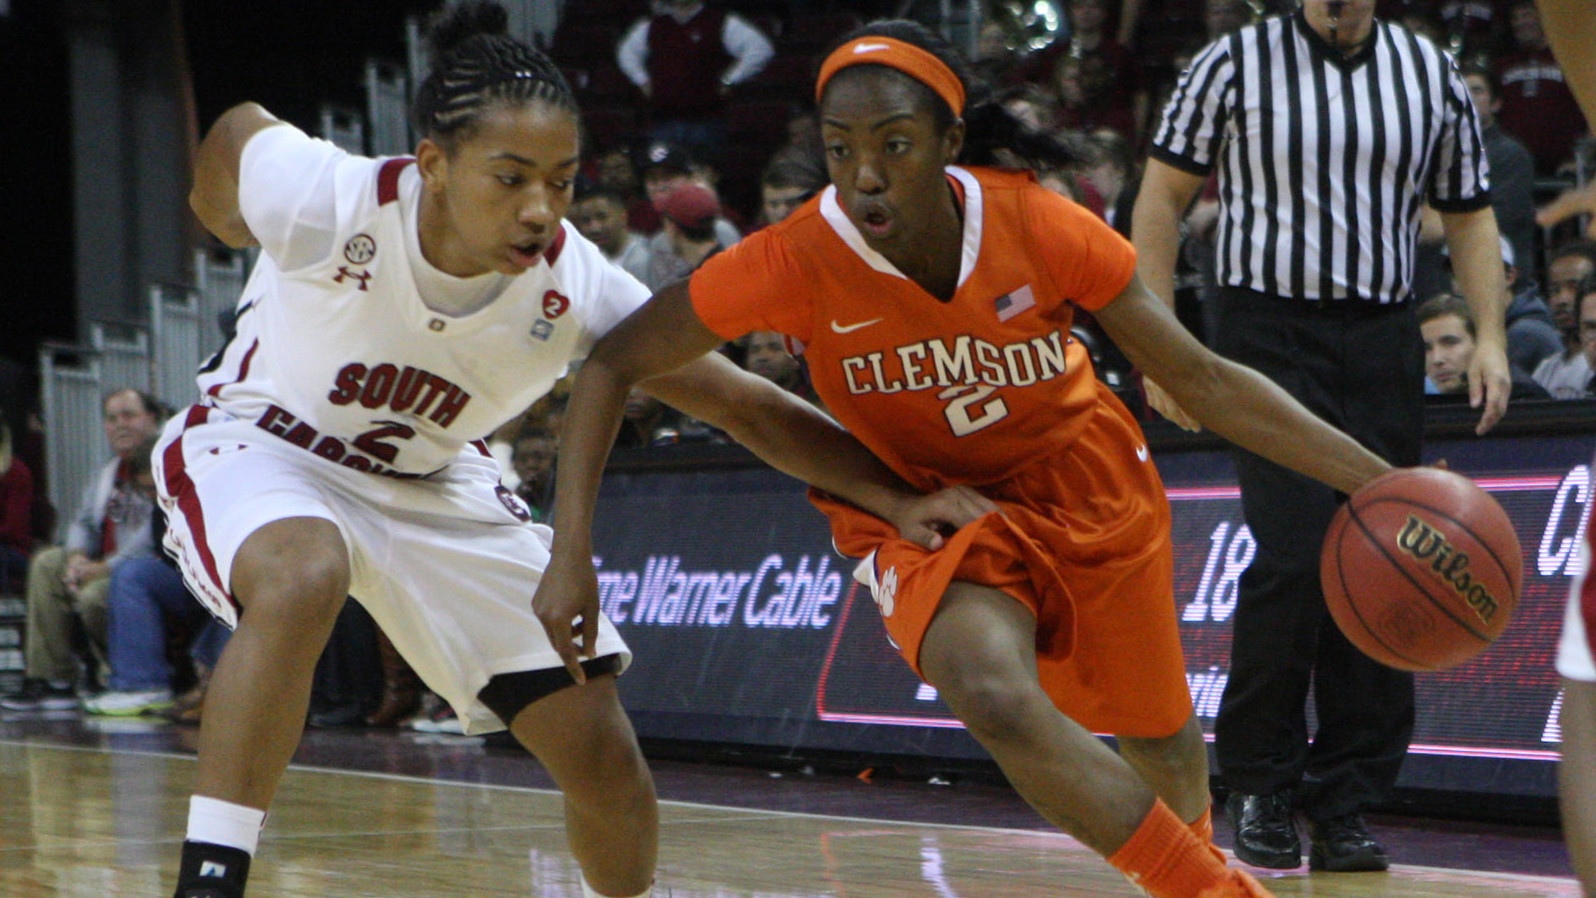 Lady Tigers Fall to Gamecocks in Columbia on Sunday